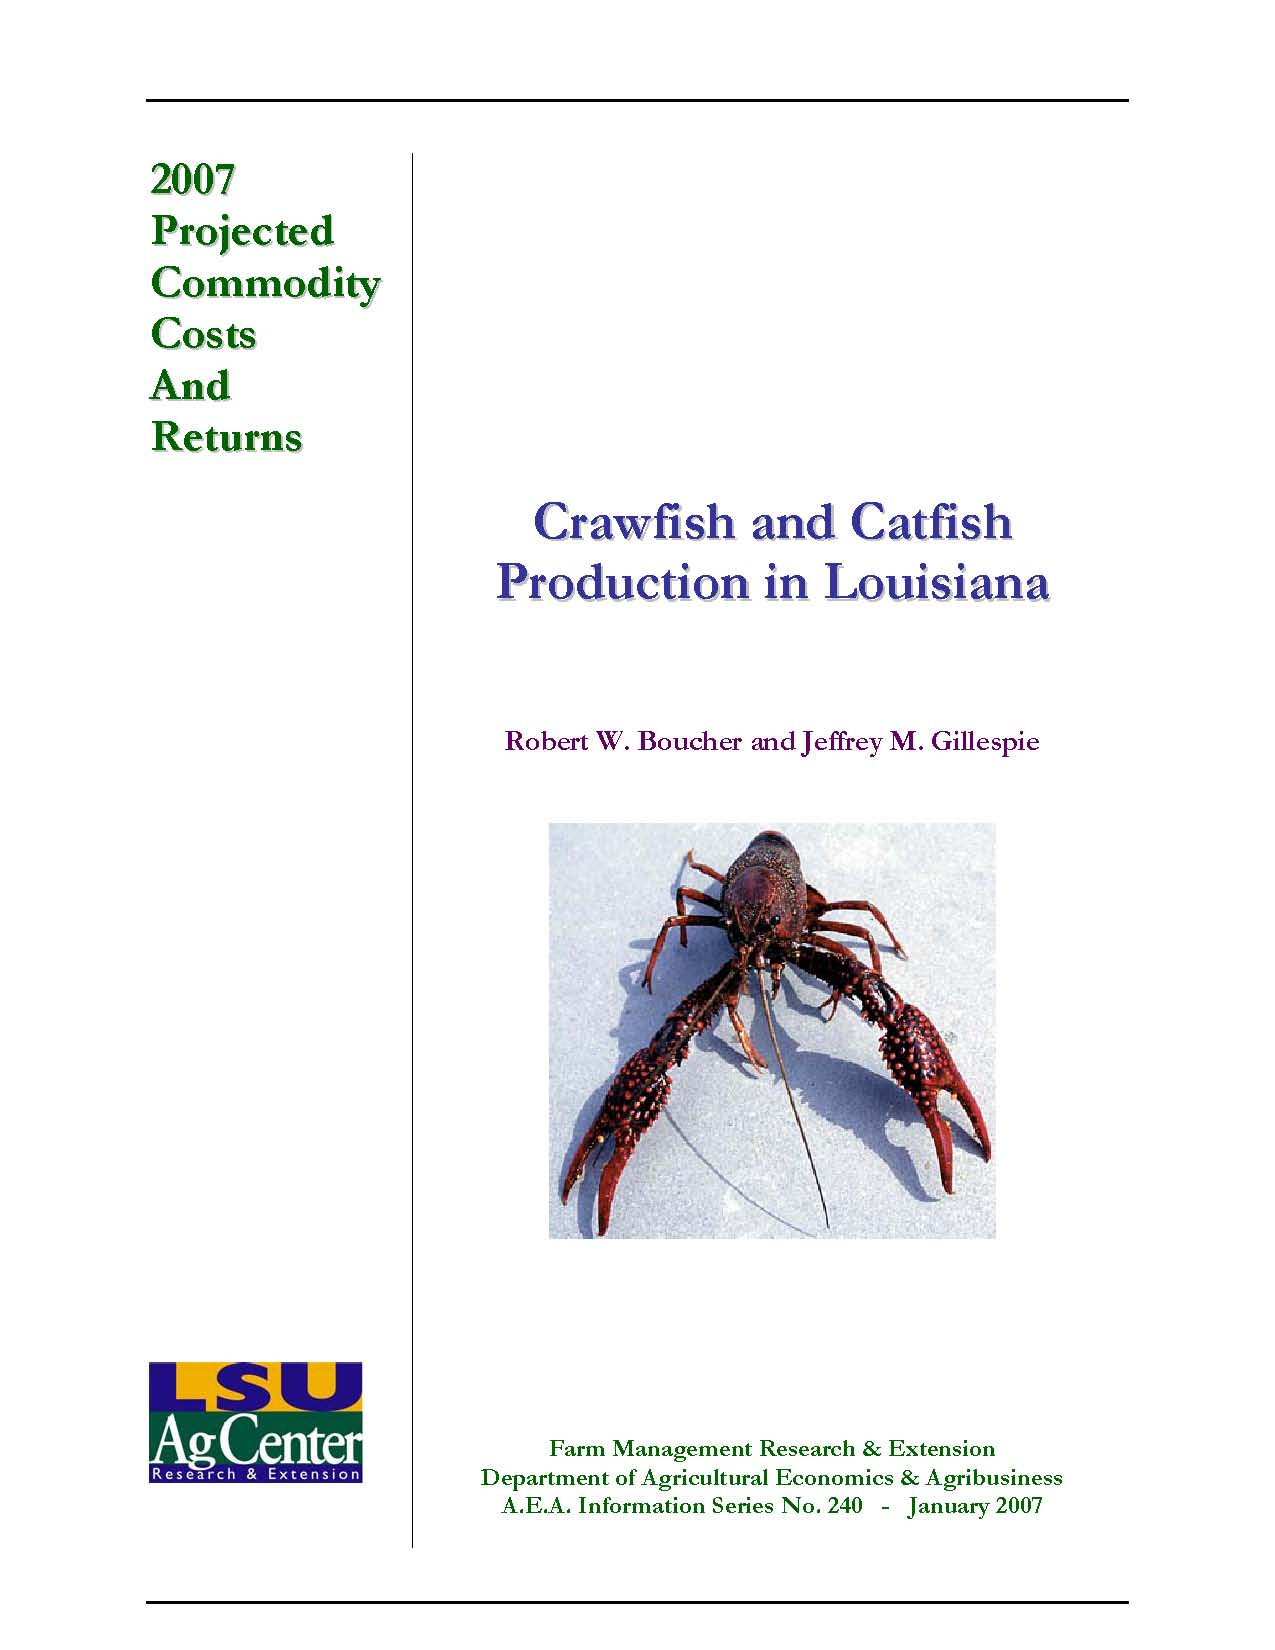 2007 Projected Louisiana Crawfish and Catfish Production Costs